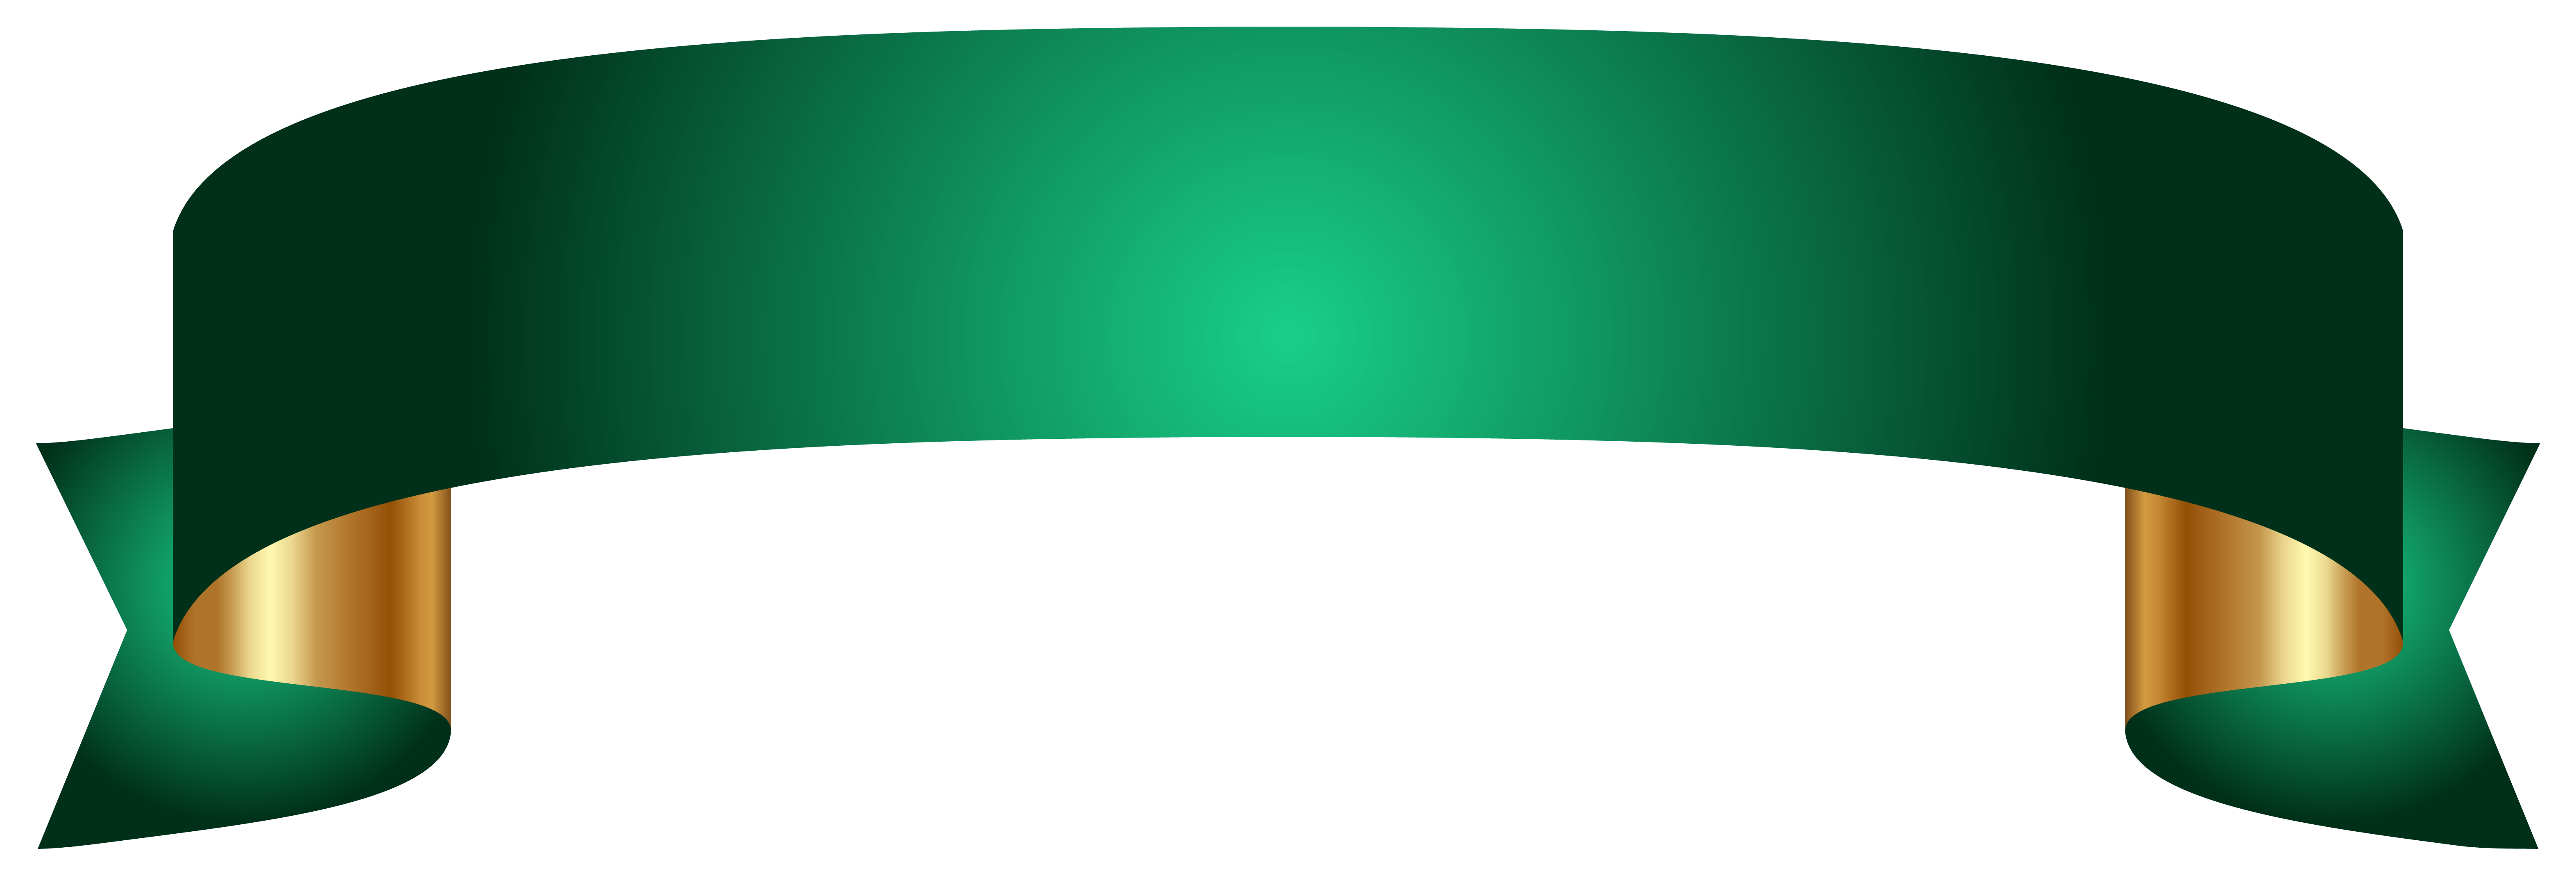 Hd Clipart Png